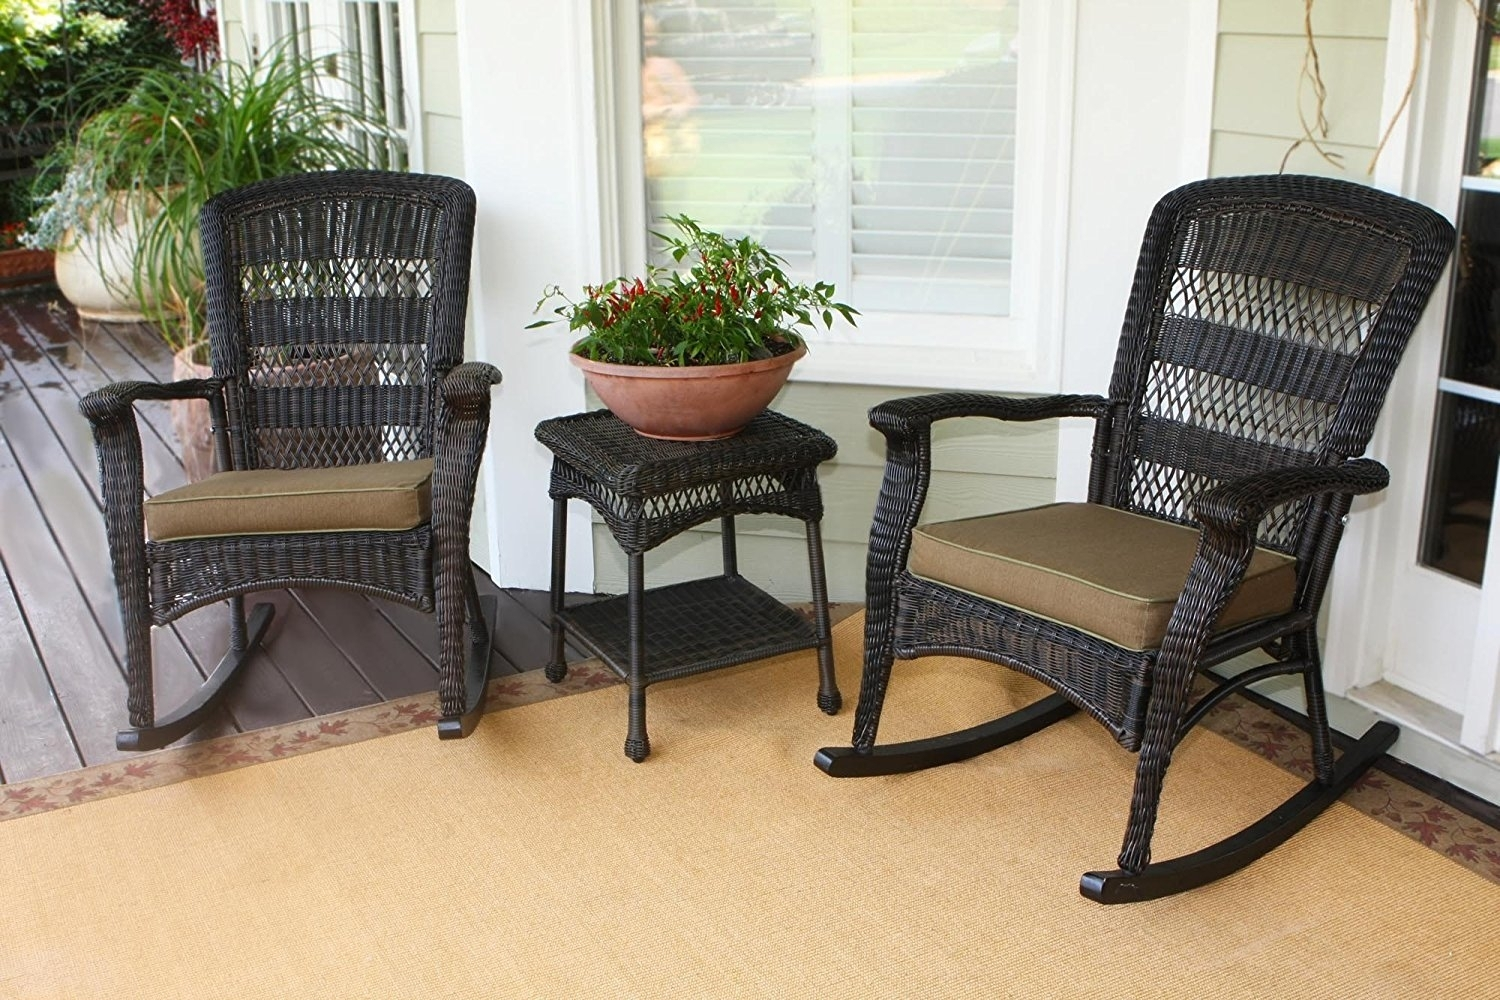 Outdoor Rocking Chair Cushions Home : Beautiful Outdoor Rocking In Patio Rocking Chairs With Cushions (View 7 of 15)